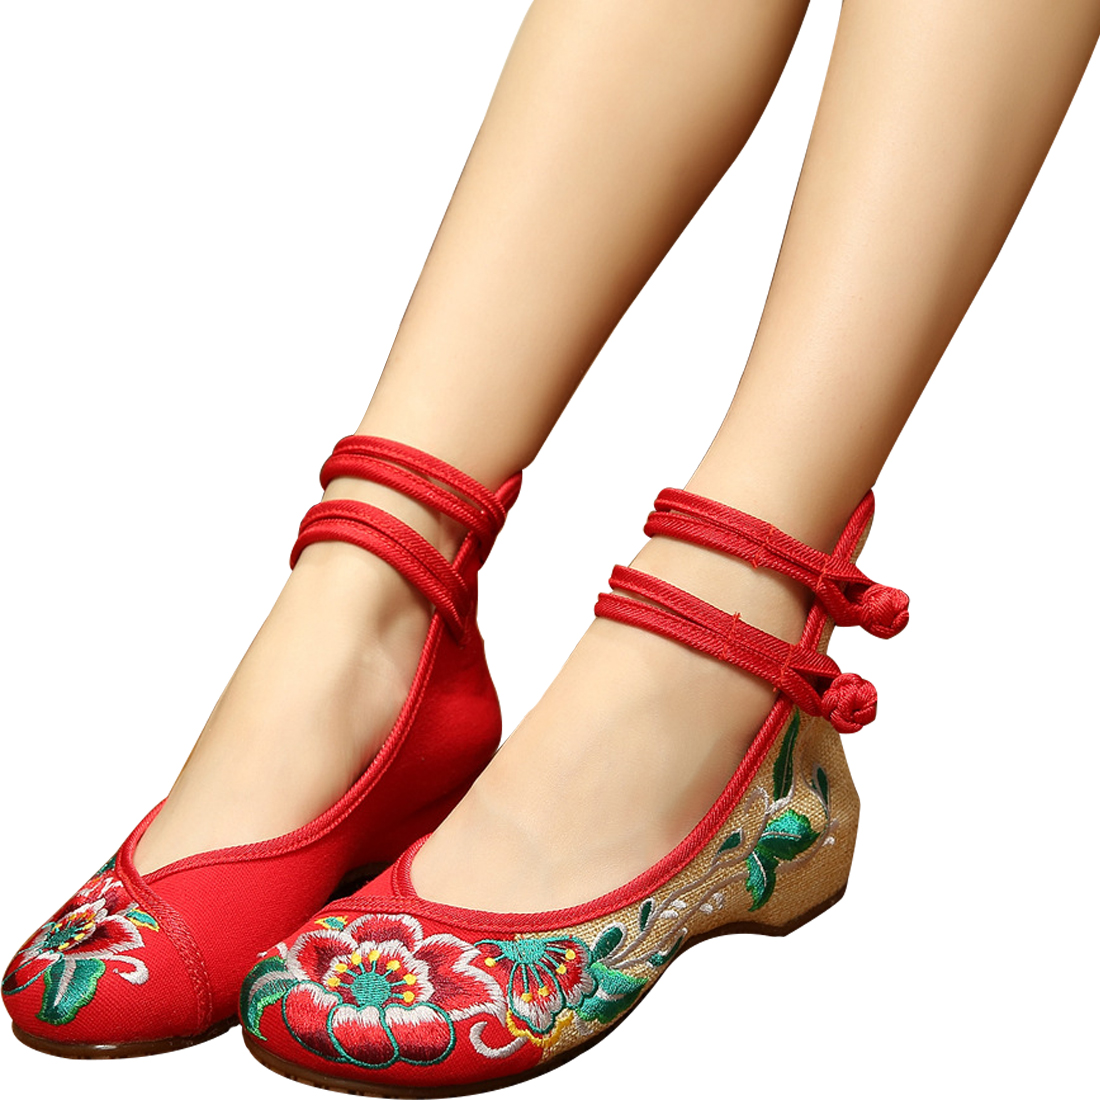 2019 New Chinese Embroidered Hibiscus Flowers Cloth Shoes Hot Canvas Women Casual Flat Loafer Cotton Fabric Red Embroider Shoes 2019 New Chinese Embroidered Hibiscus Flowers Cloth Shoes Hot Canvas Women Casual Flat Loafer Cotton Fabric Red Embroider Shoes